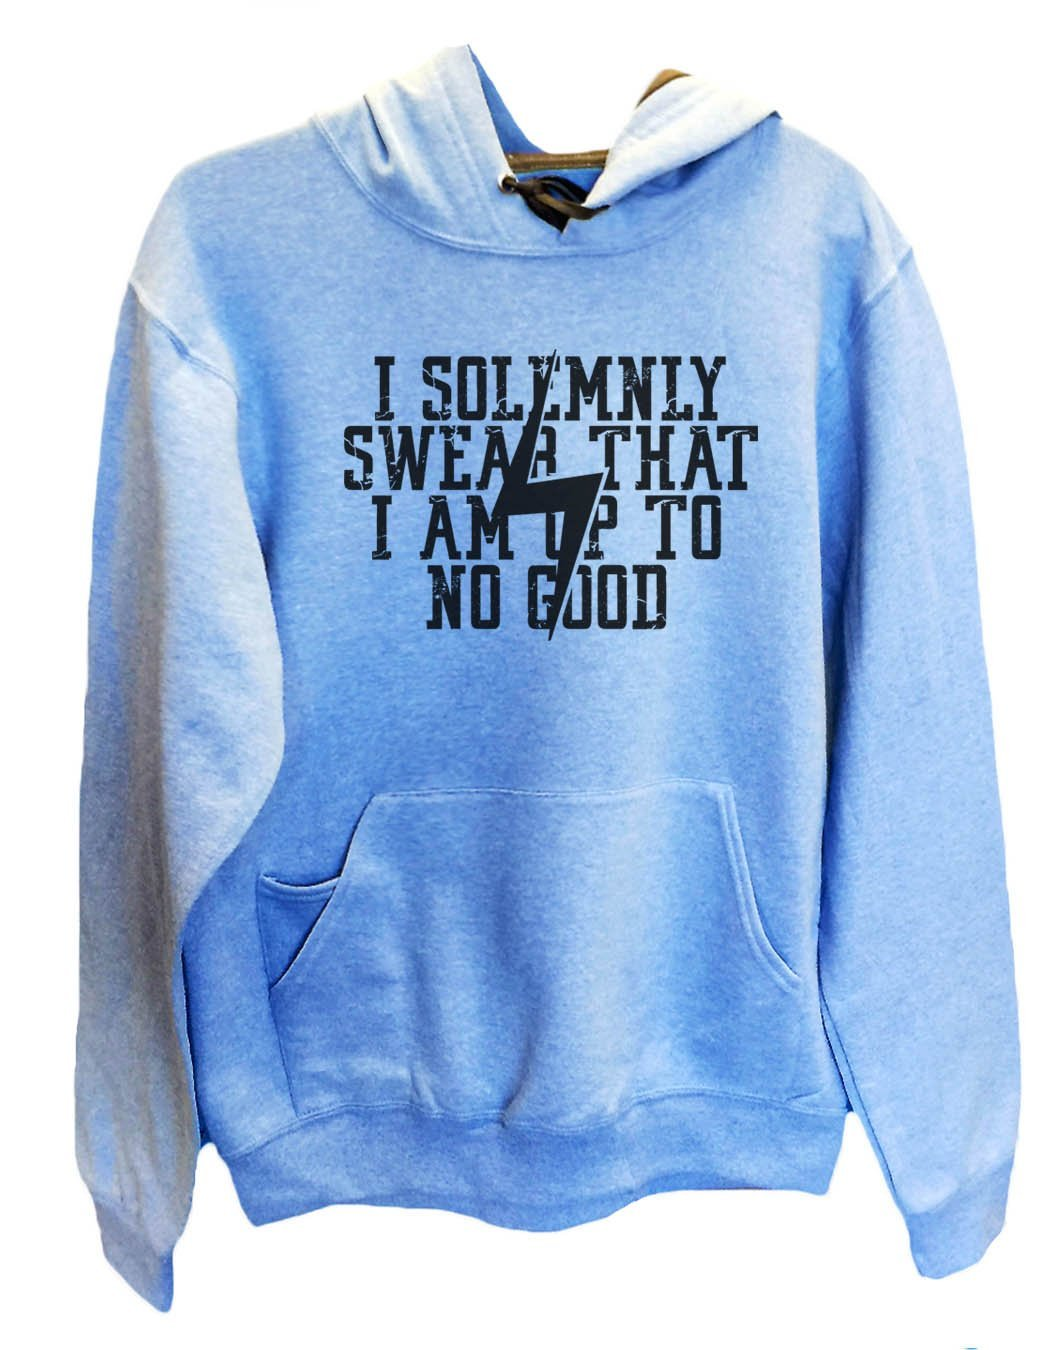 UNISEX HOODIE - I Solemnly Swear That I Am Up To No Good - FUNNY MENS AND WOMENS HOODED SWEATSHIRTS - 2136 Funny Shirt Small / North Carolina Blue